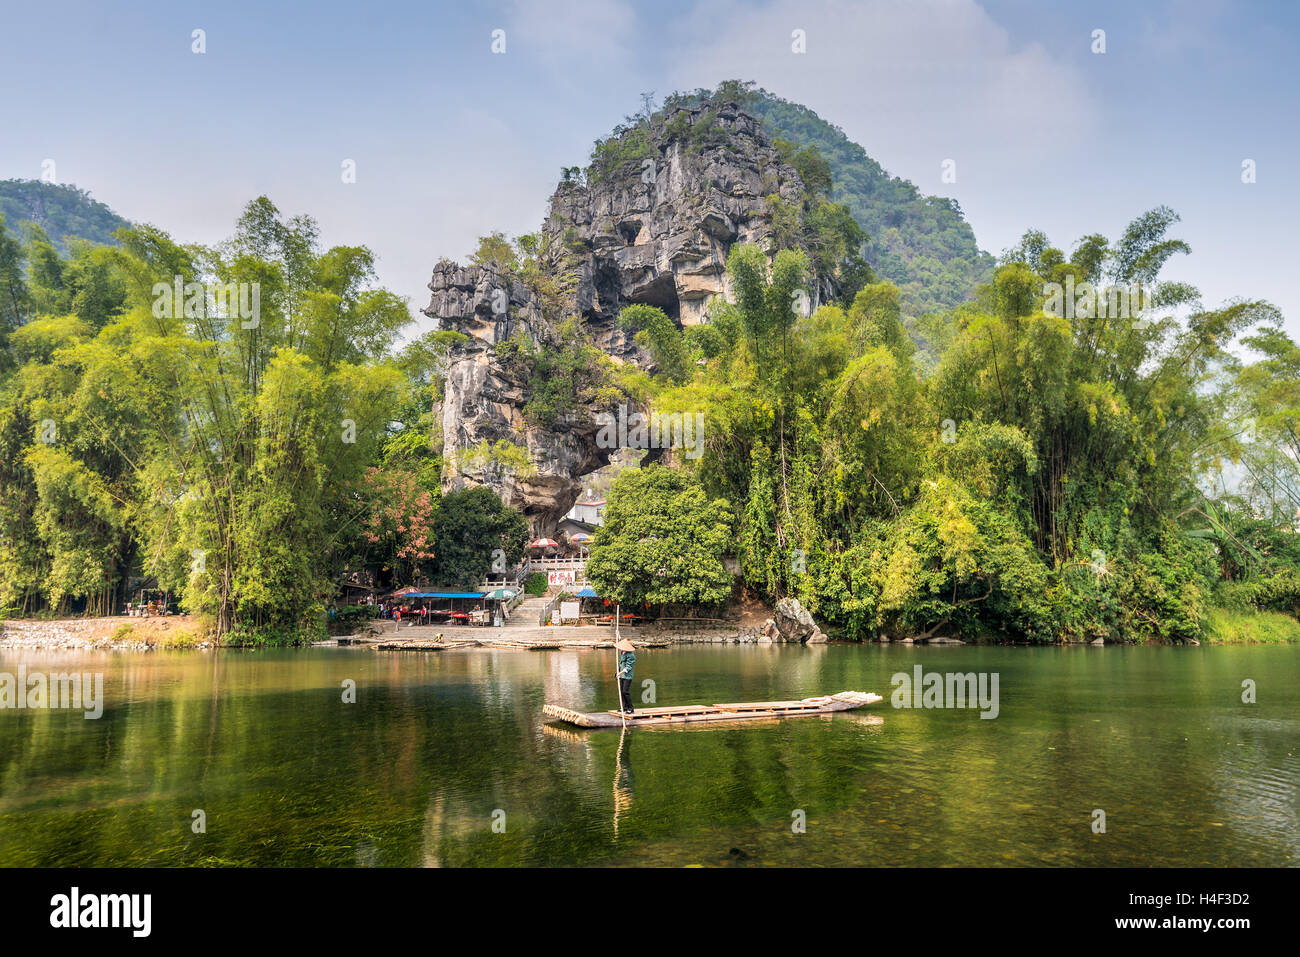 The limestones hill at vicinity of the Banyan Tree Park at Chuanyan Village, Yangshuo County - Stock Image